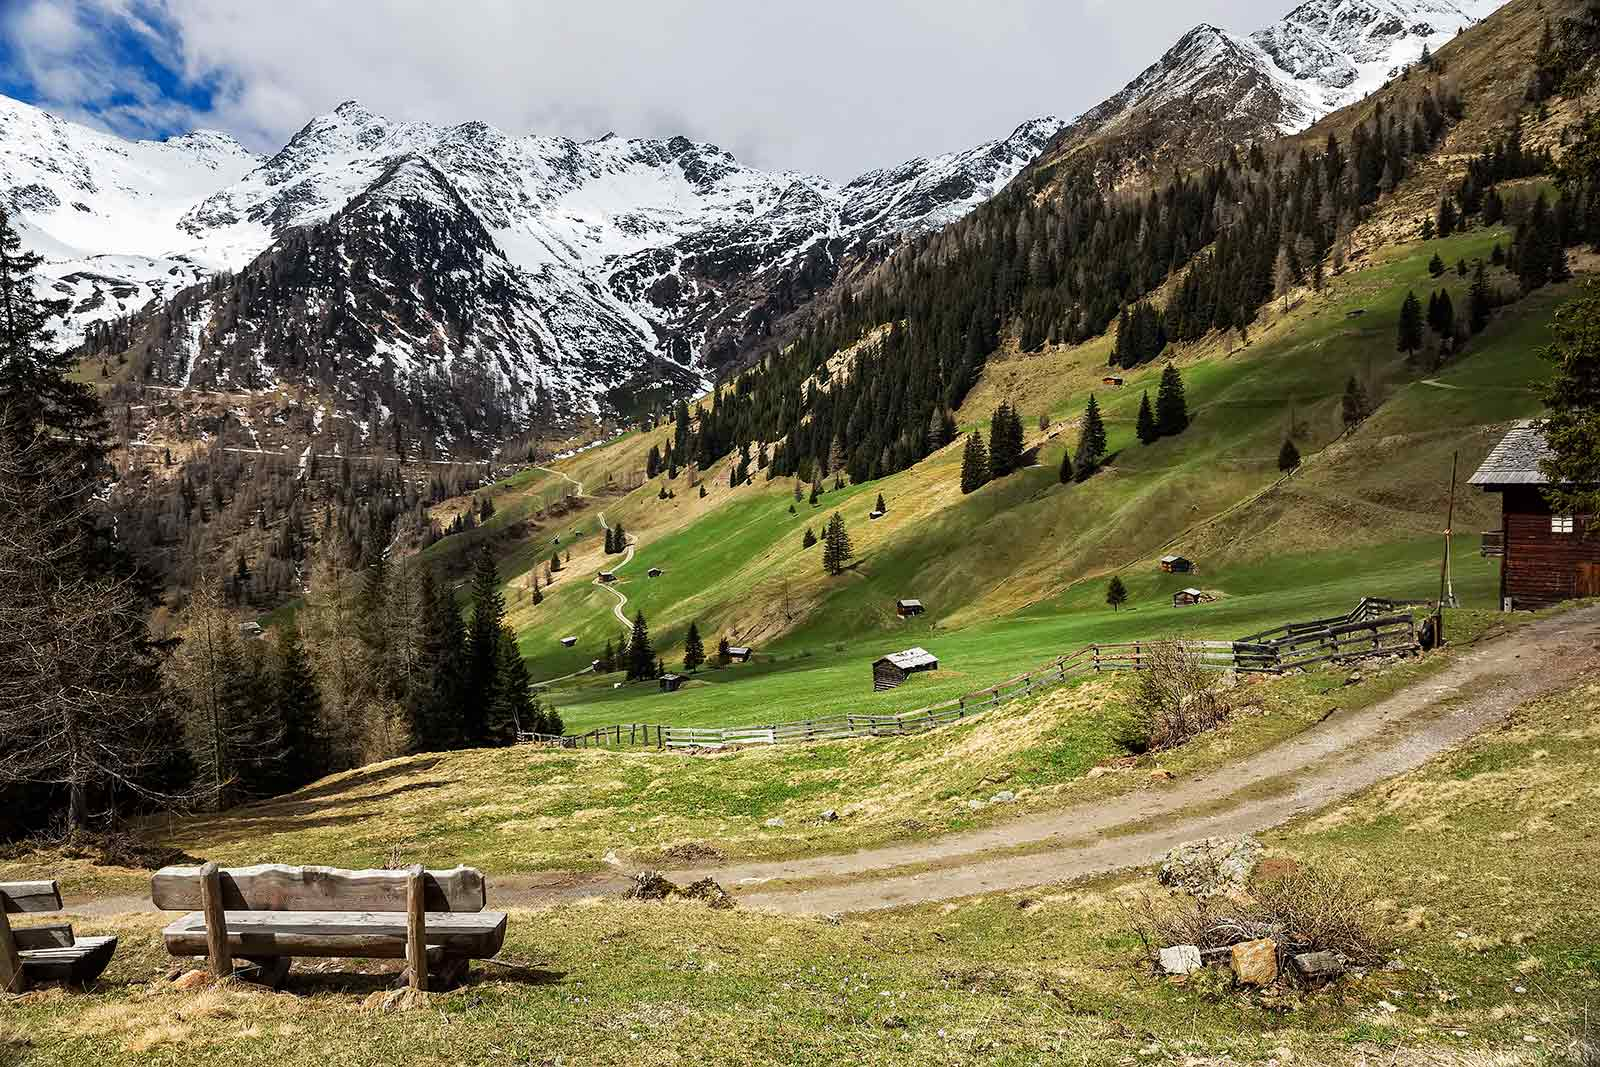 The landscape around the Innervillgraten valley is one of the most beautiful we've come across in Austria.